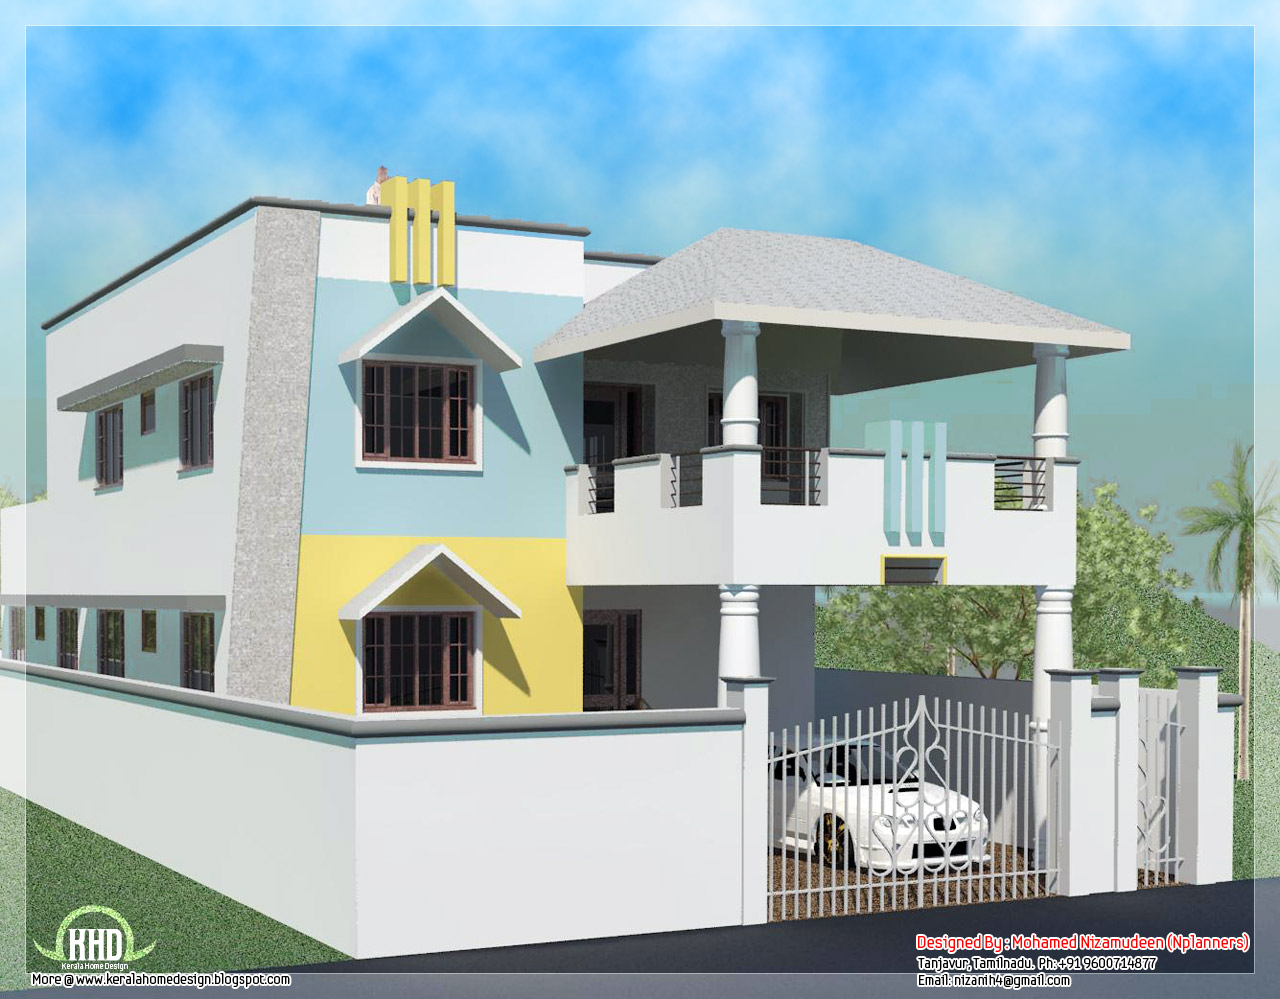 house model in indian style - Home Design Plans Indian Style